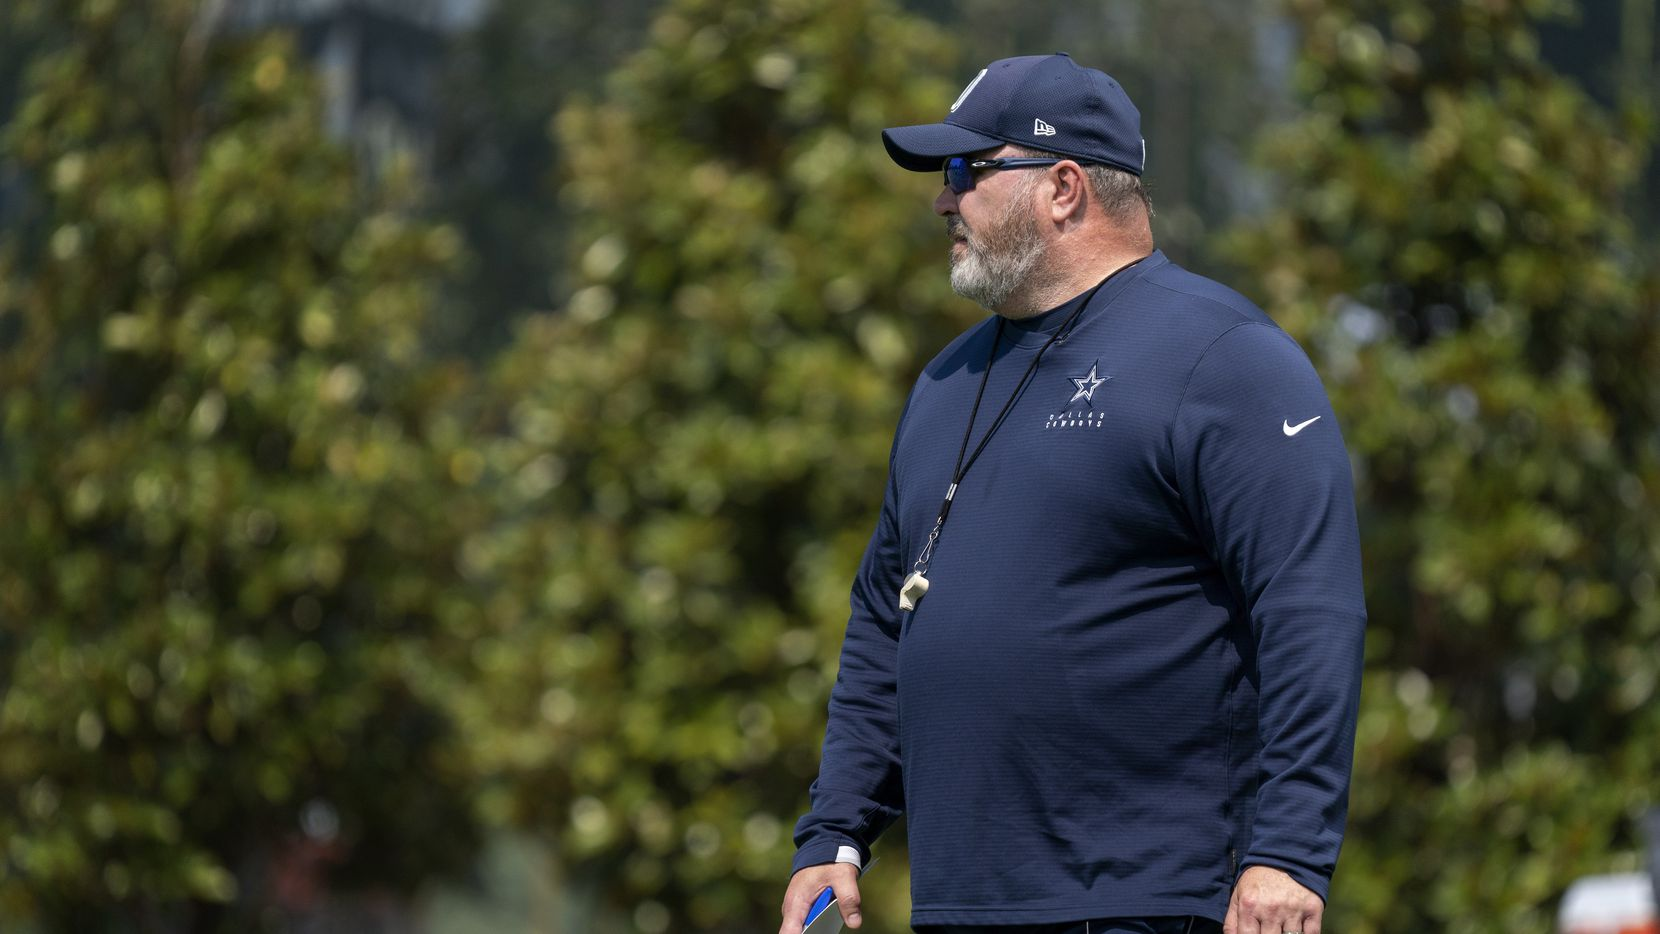 Dallas Cowboys head coach Mike McCarthy watches his team during a preseason practice, Thursday, September 2, 2021 at The Star in Frisco in Dallas, Texas. (Jeffrey McWhorter/Special Contributor)